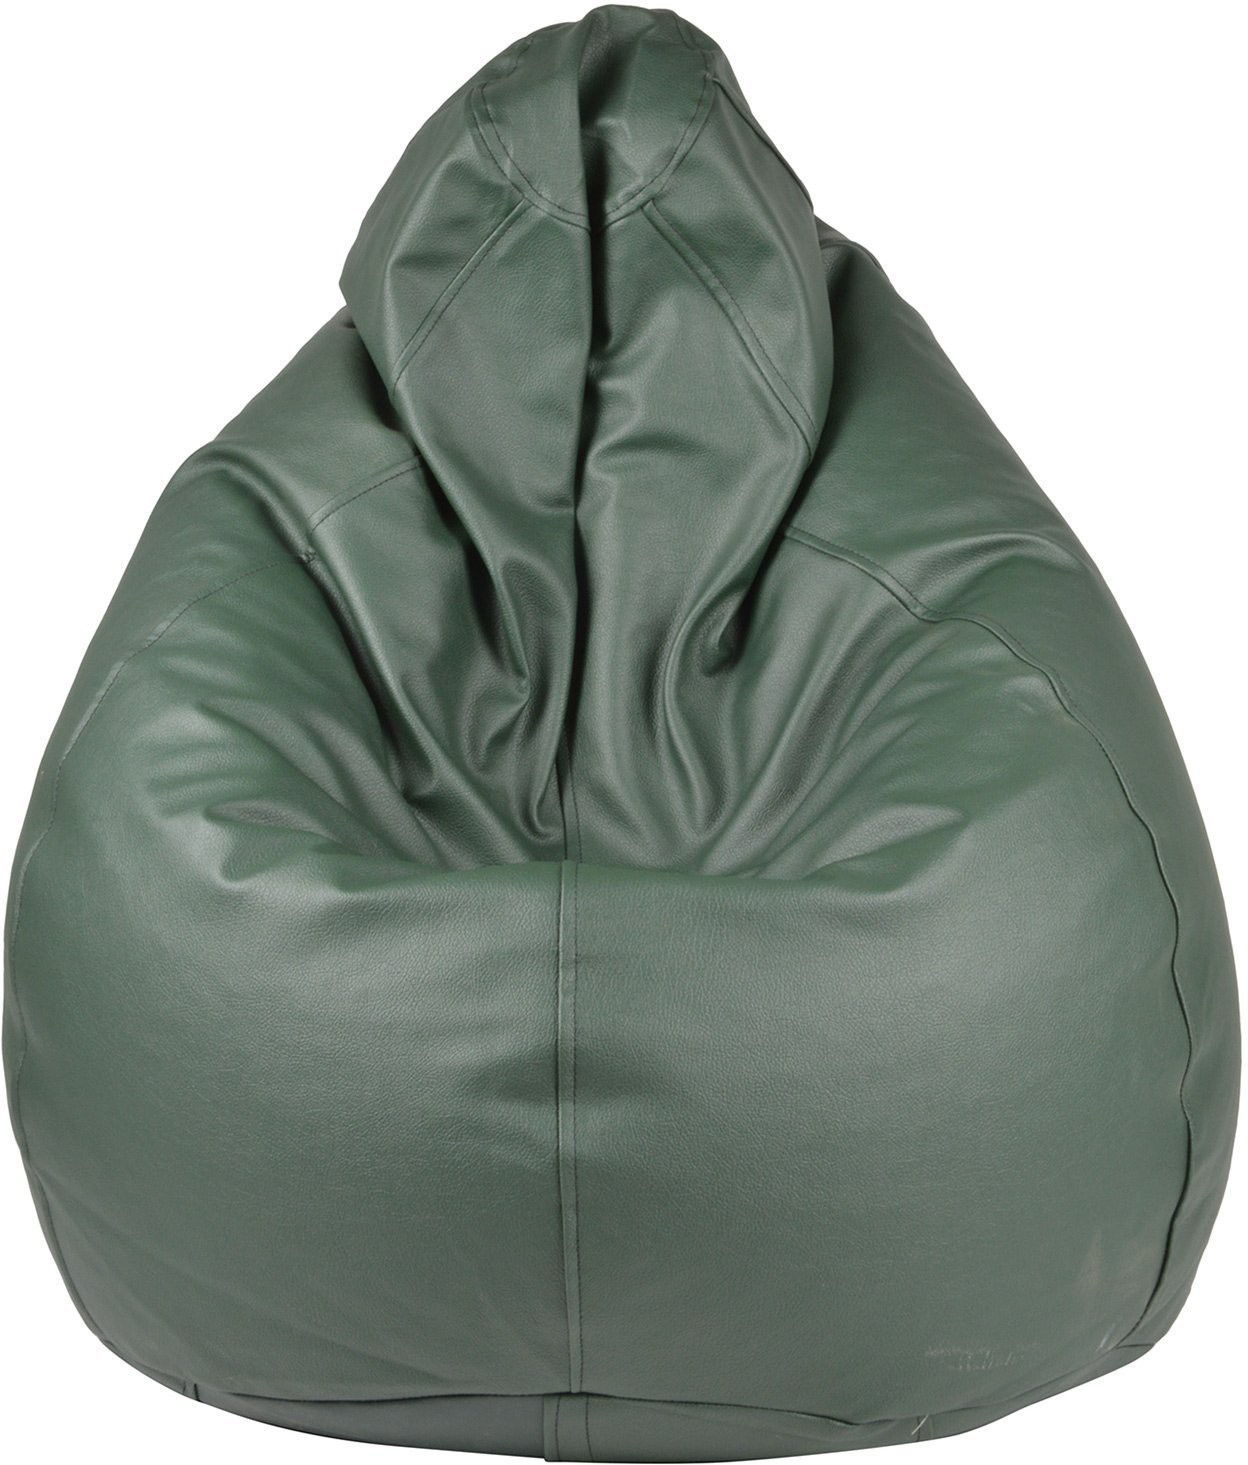 View Galaxy Decorz XXL Bean Bag Cover(Green) Furniture (Galaxy Decorz)